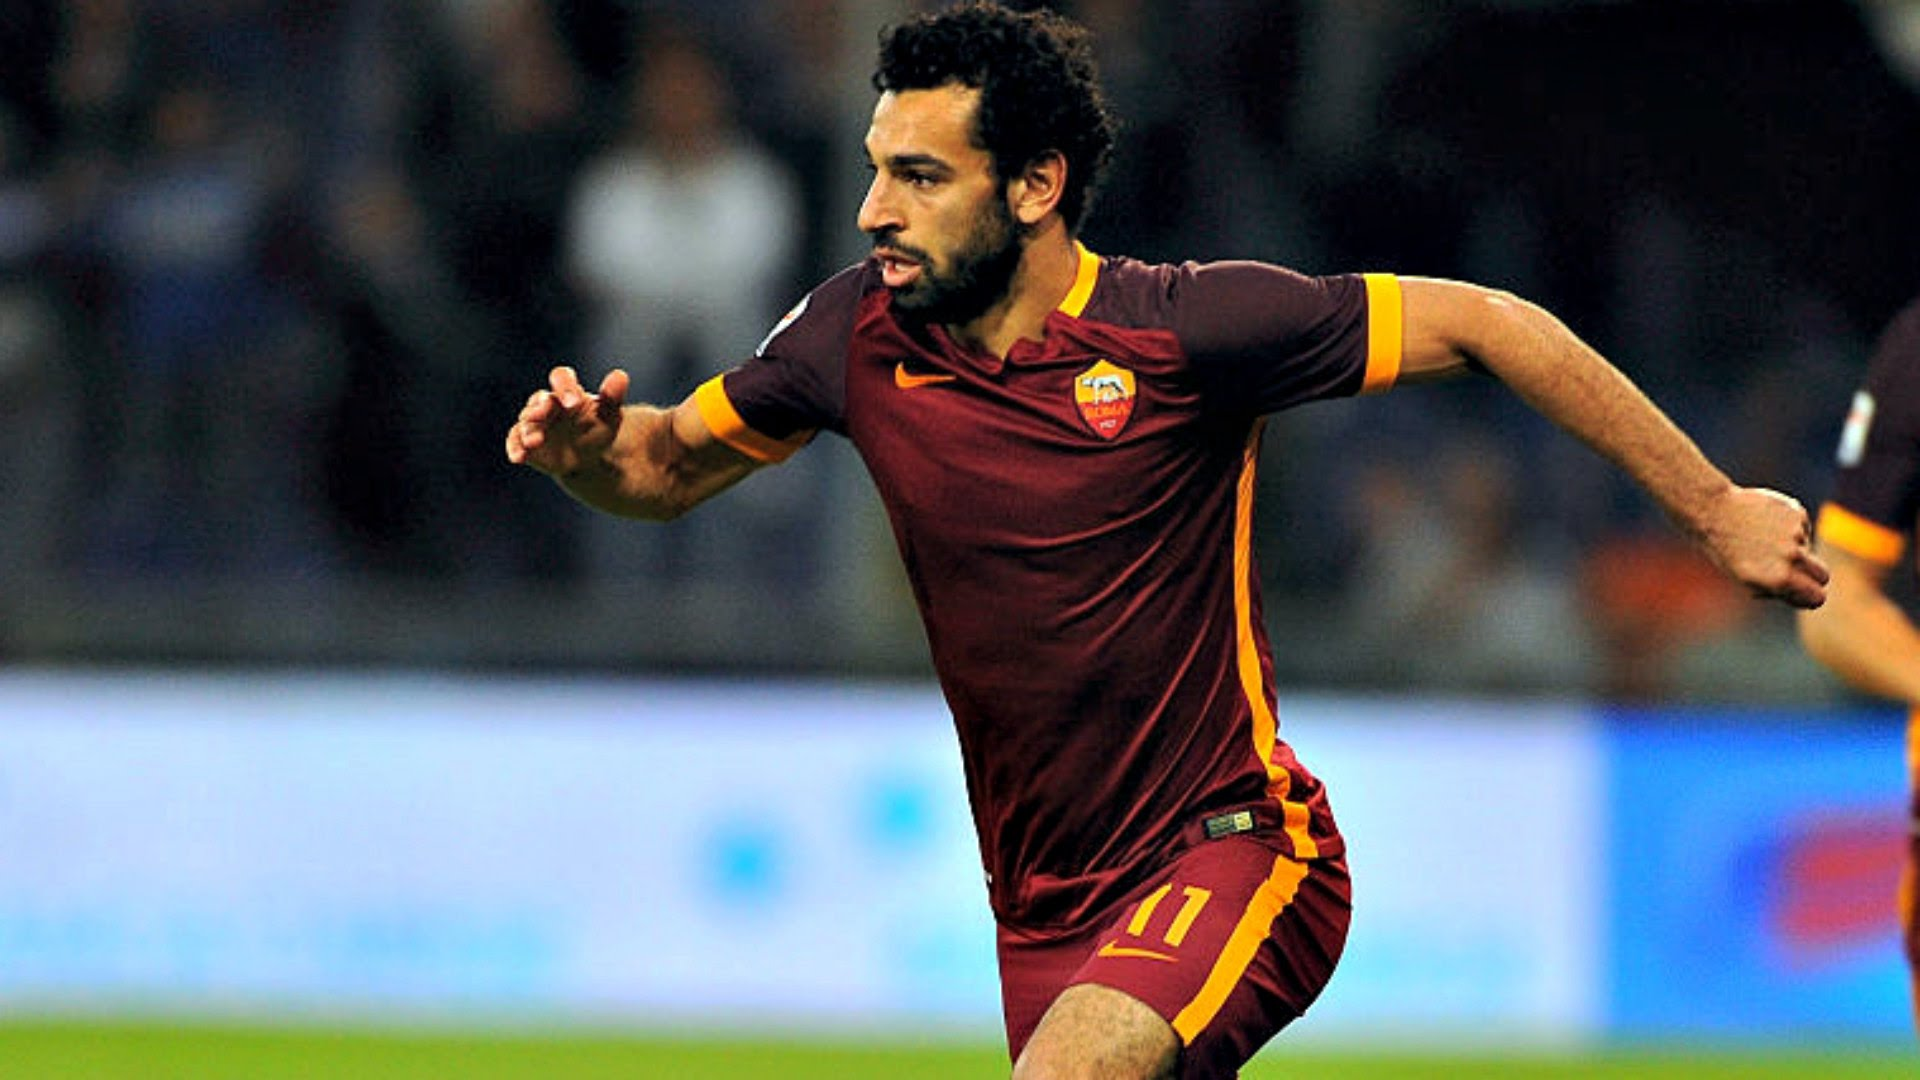 Liverpool have no agreement with Mohamed Salah or Roma but there